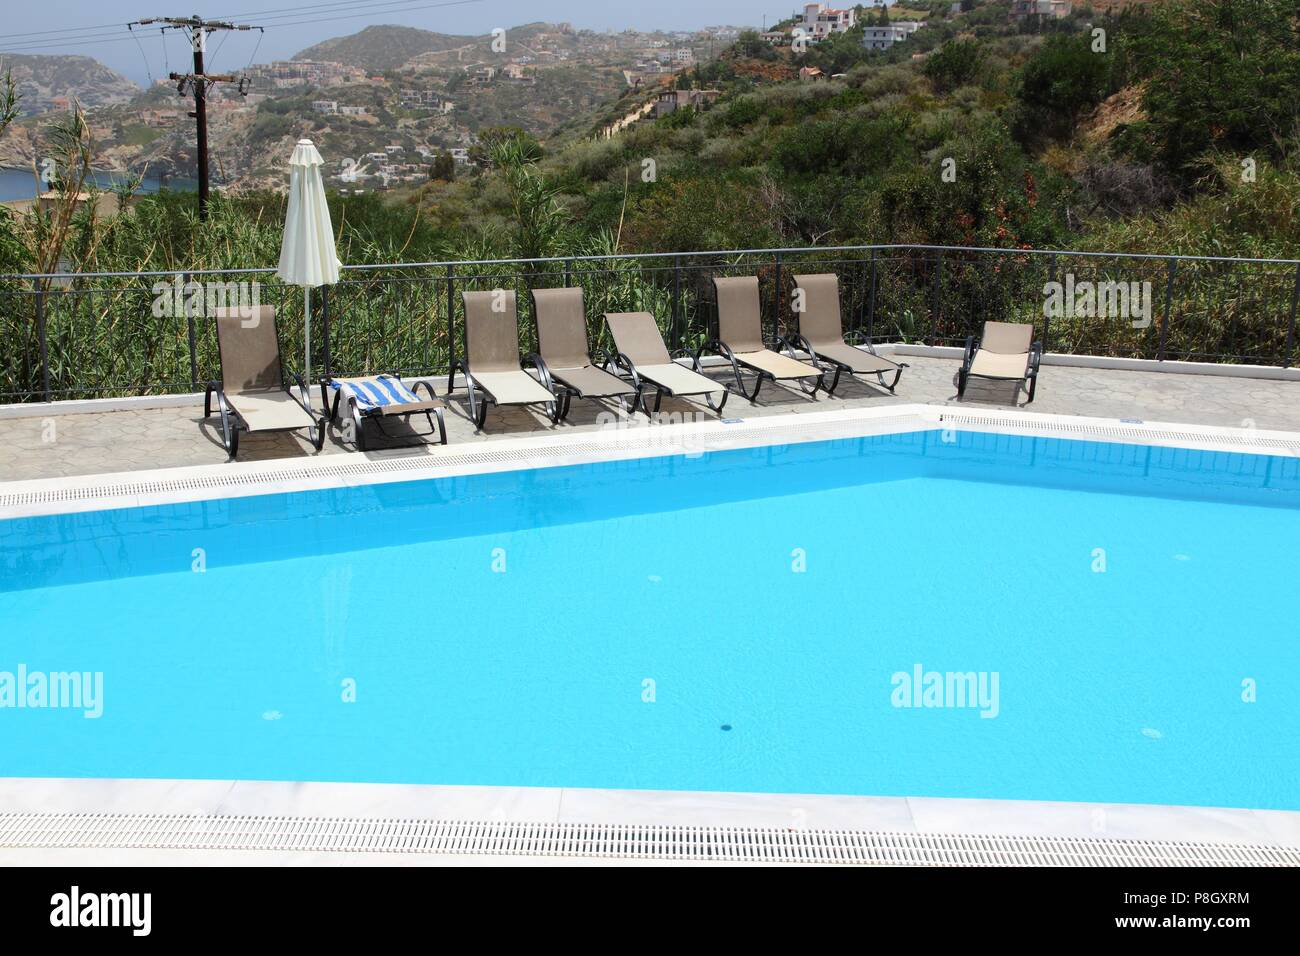 Superieur Generic Vacation Resort In Crete Island In Greece. Swimming Pool Sun Tanning  Chairs.